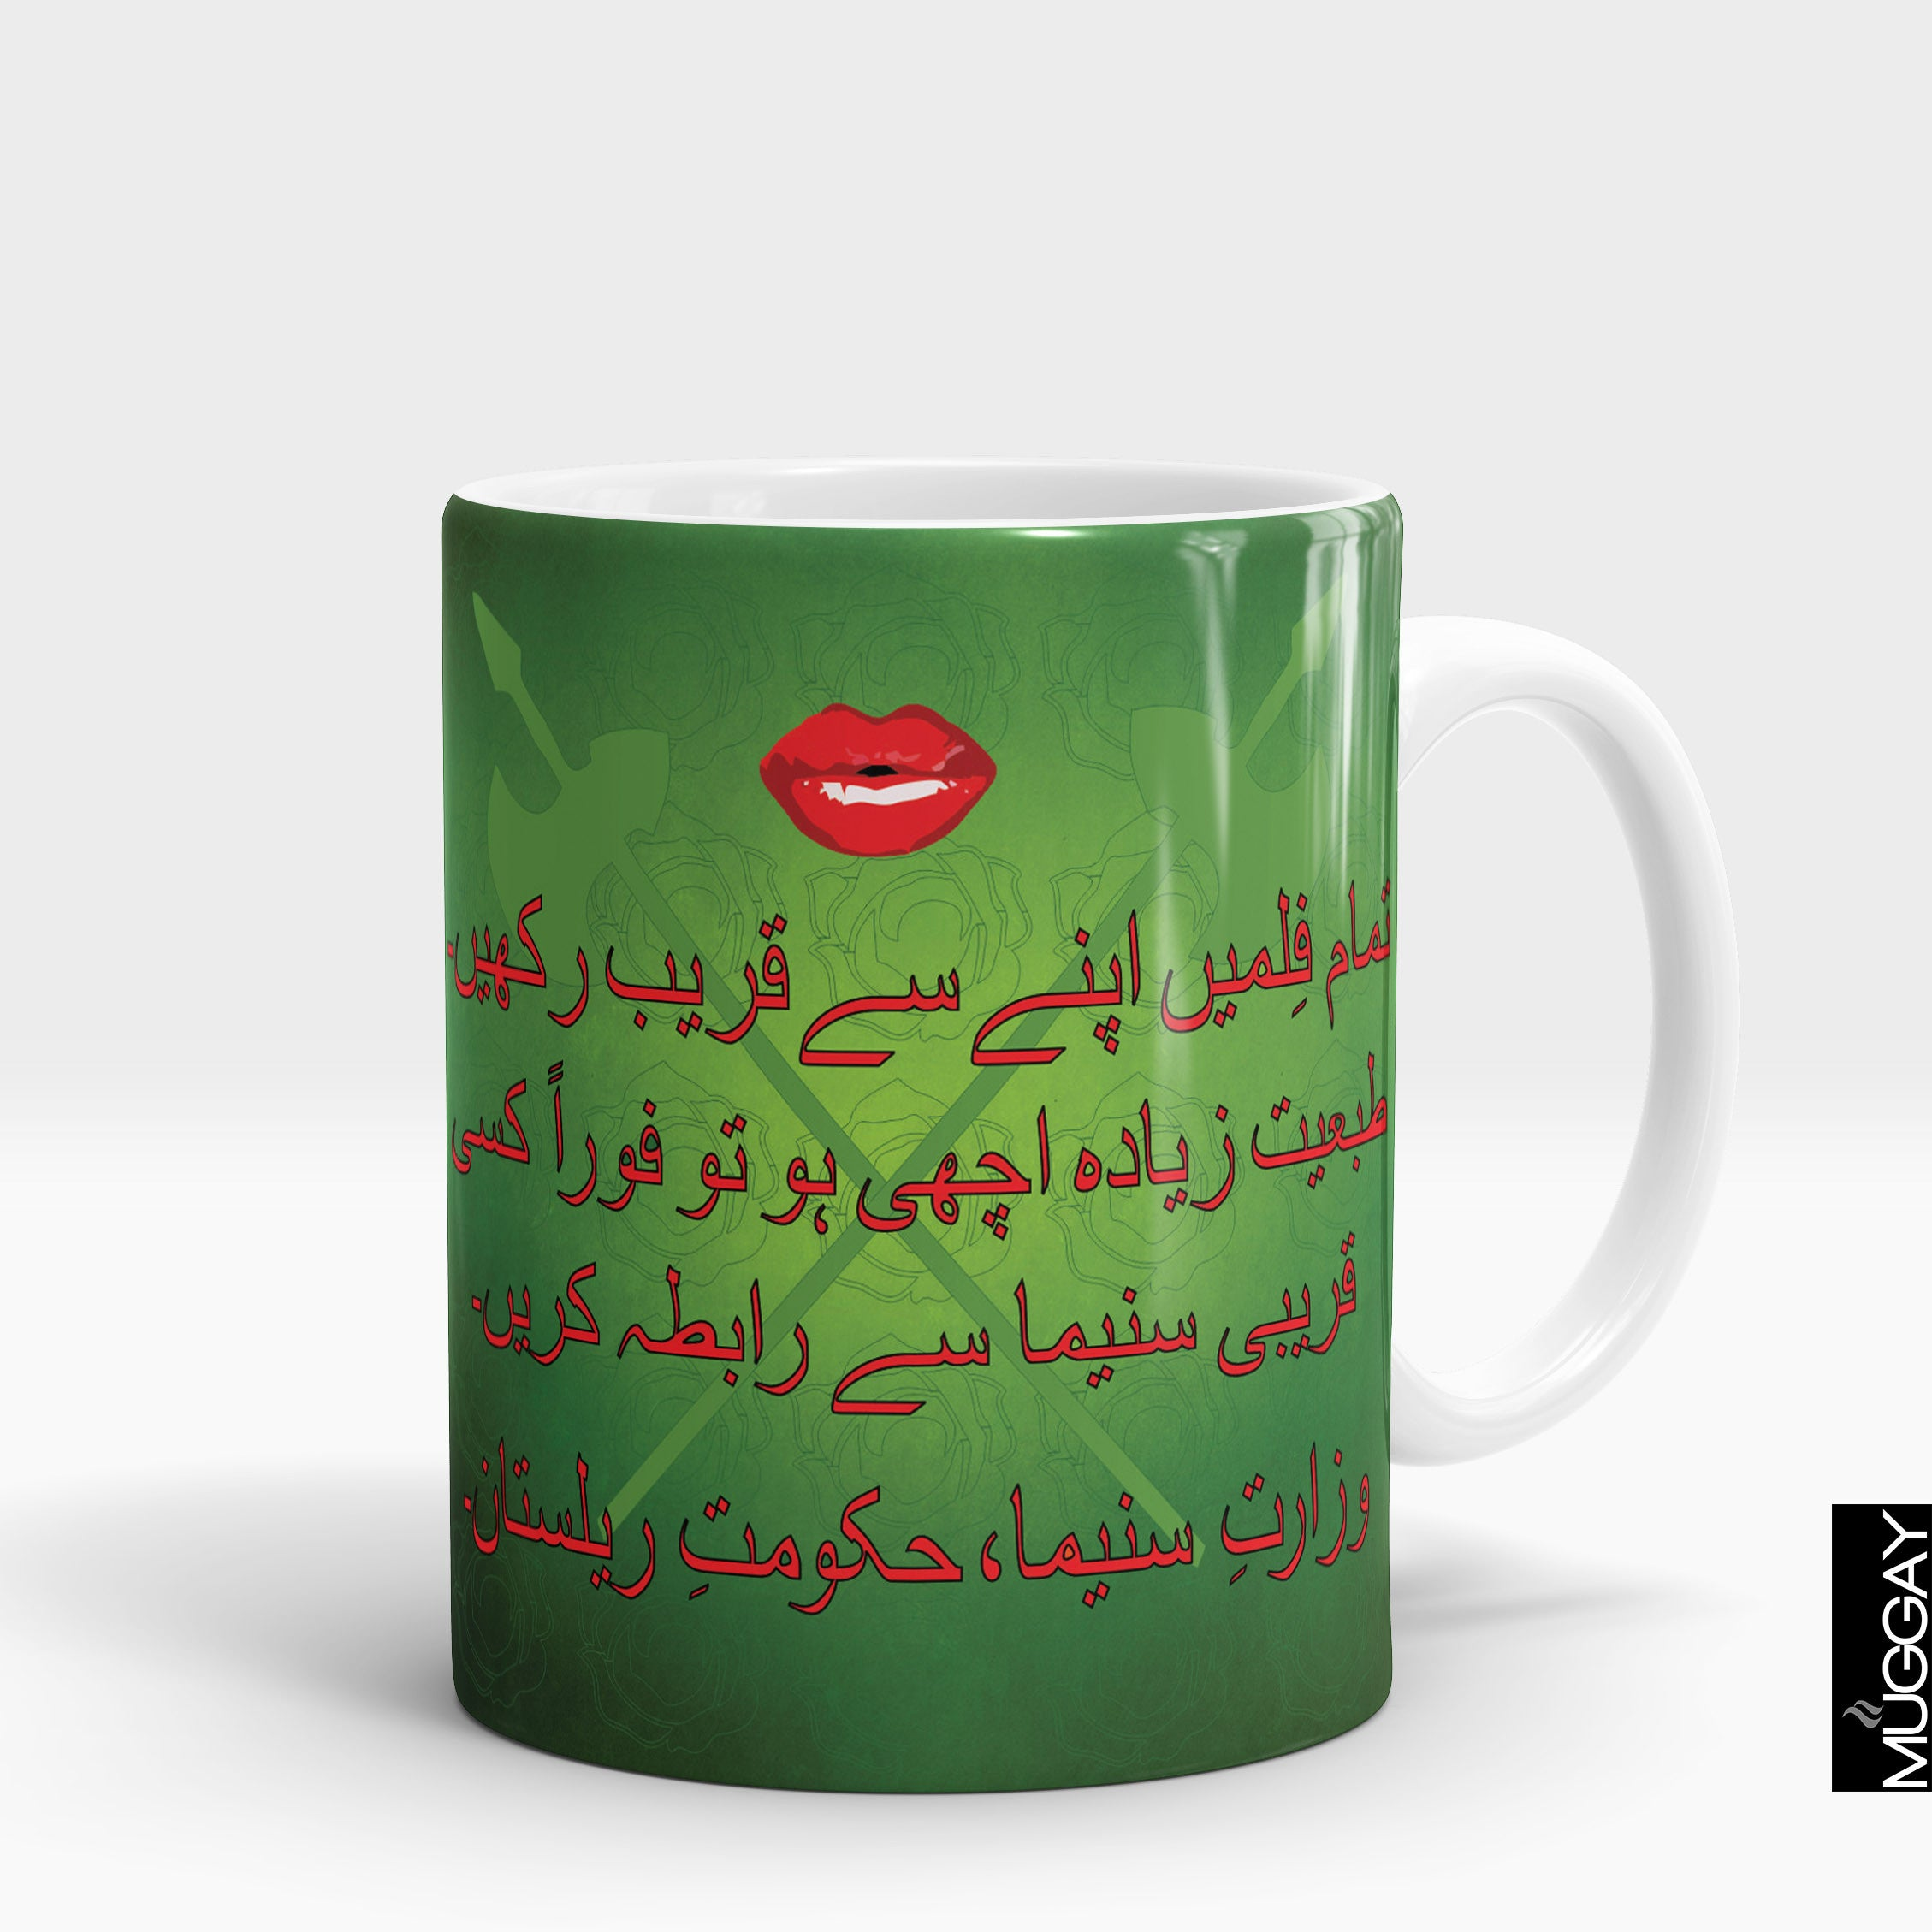 Funny Lollywood mugs11